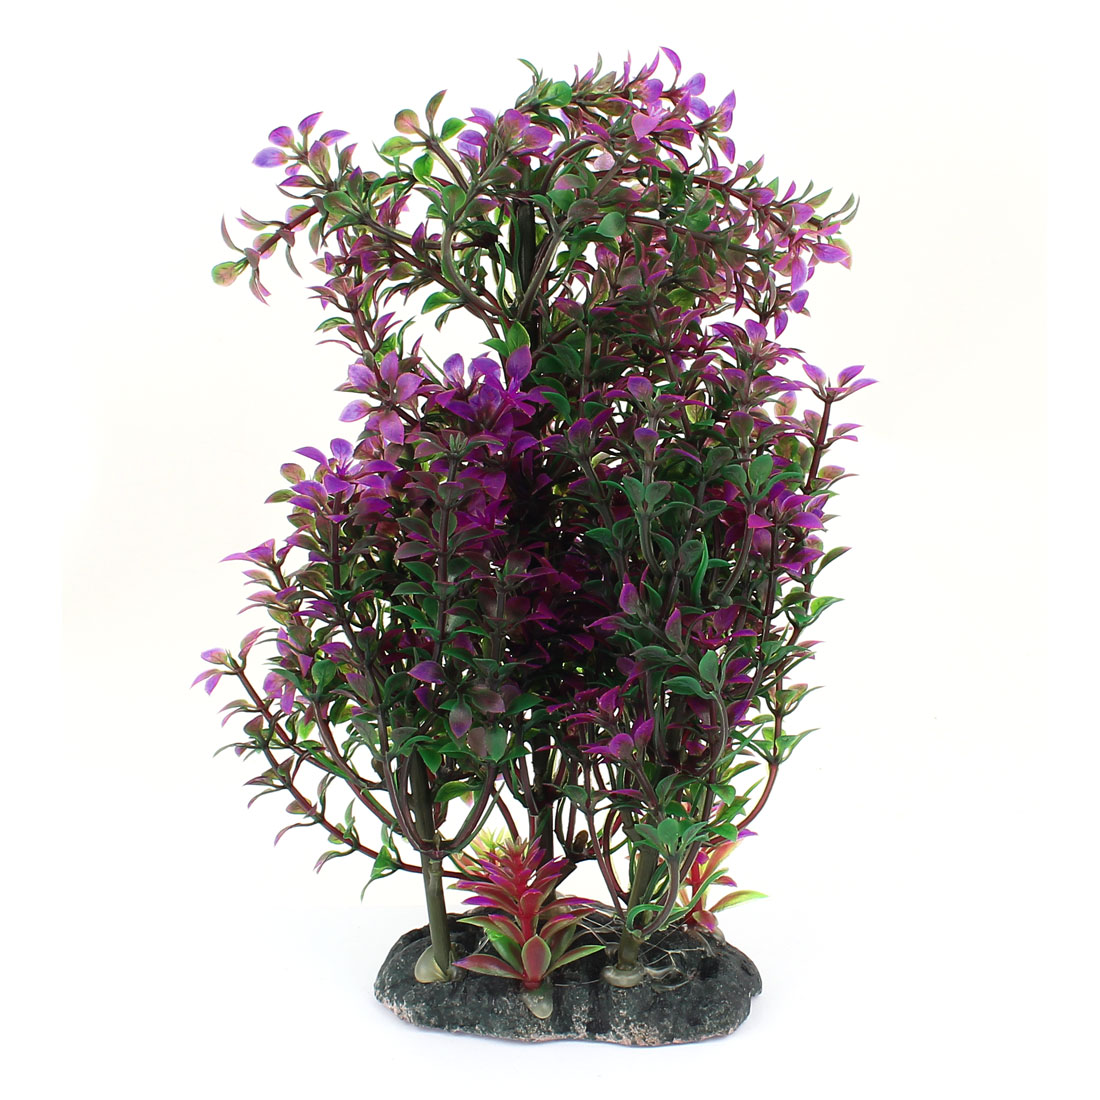 Green Purple Plastic Emulational Aquarium Underwater Plant Ornament for Fishbowl Fish Tank